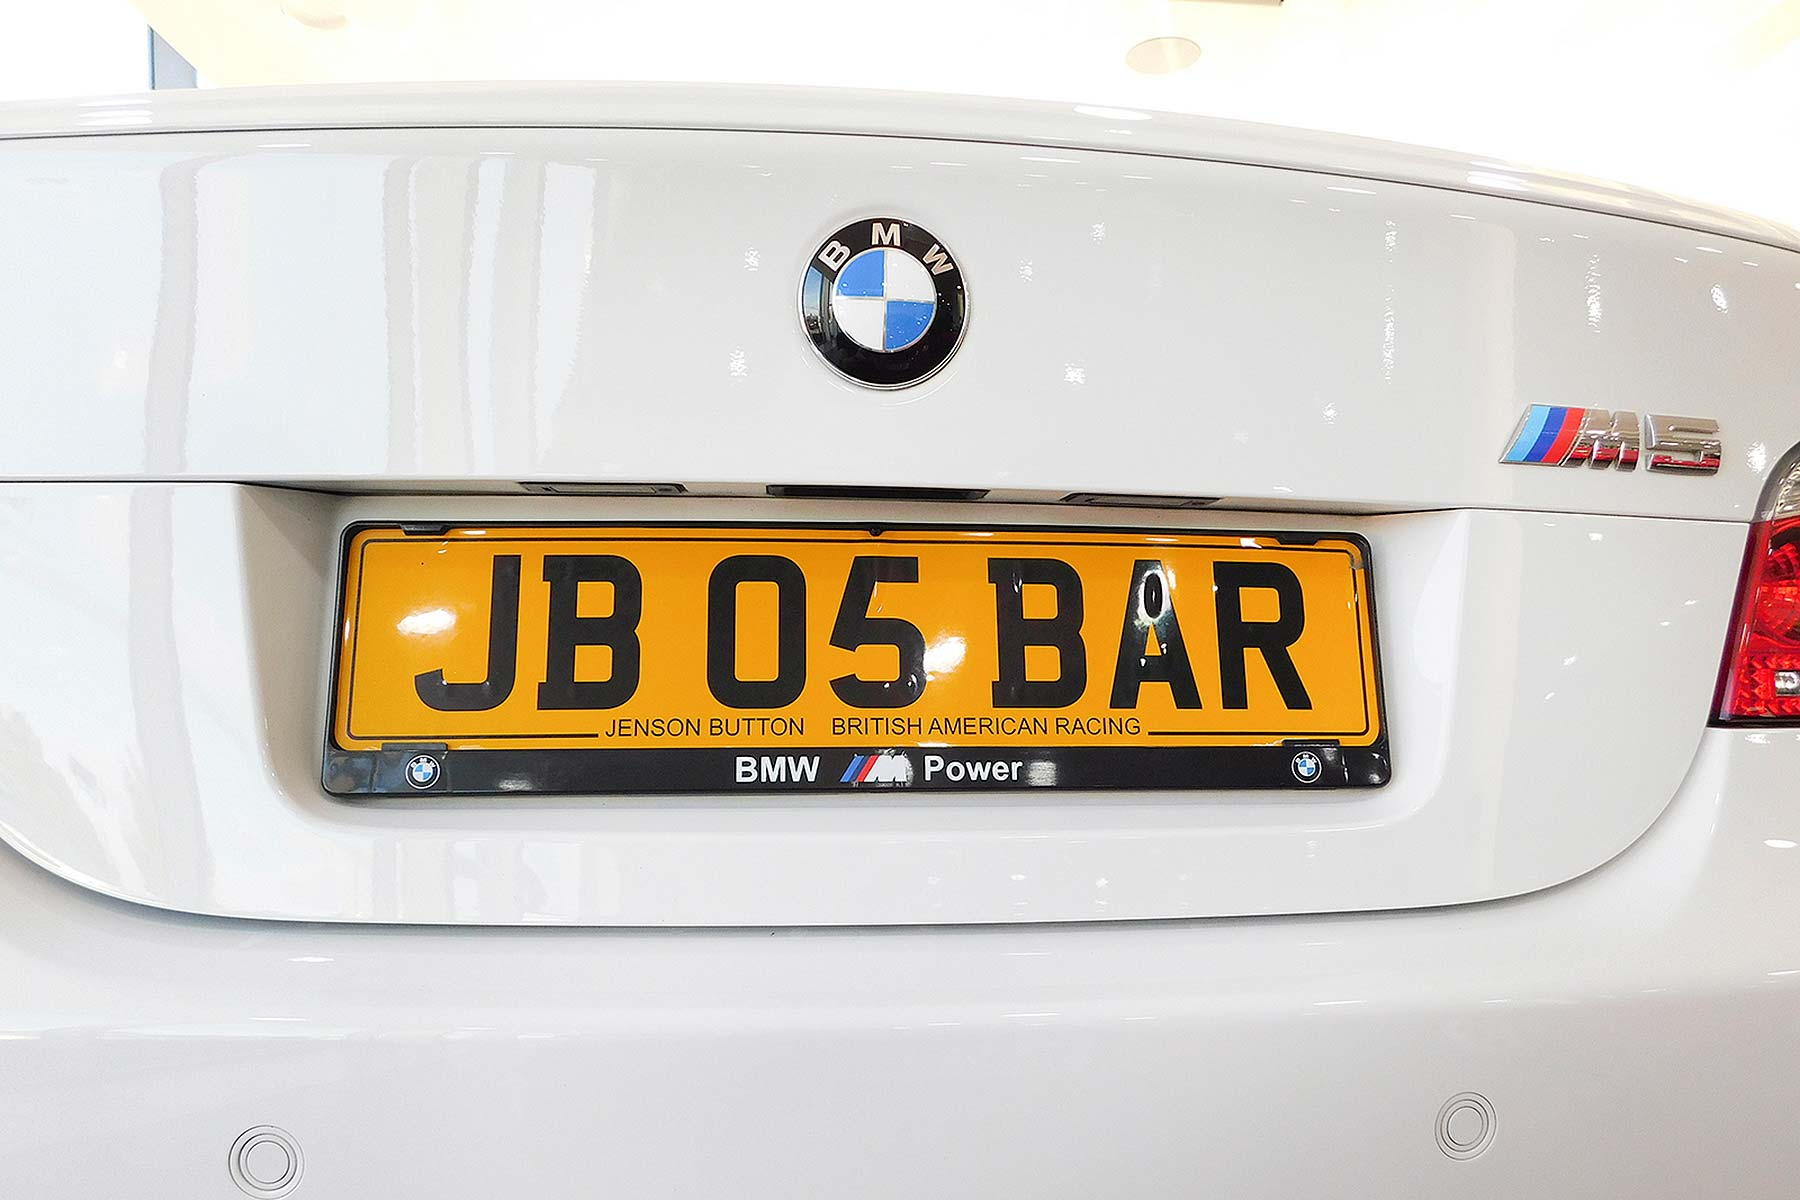 Jenson Button's old 2005 BMW M5